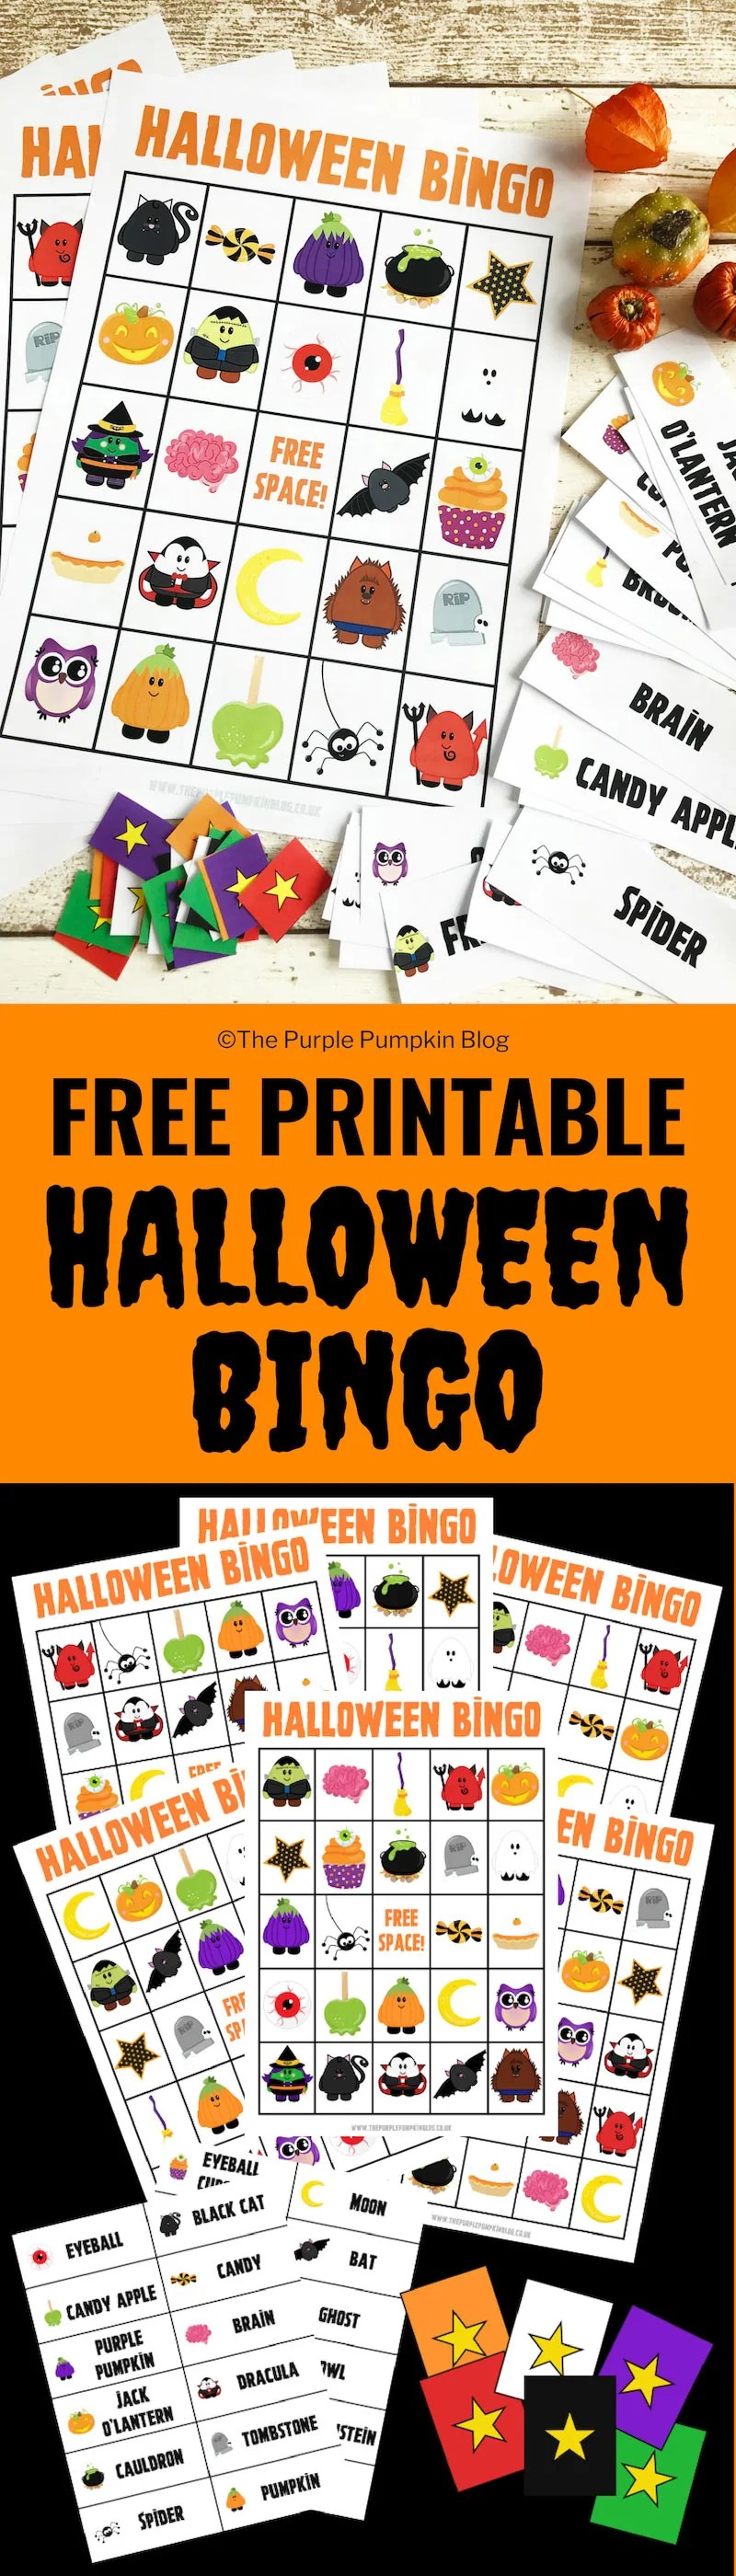 photo regarding Printable Halloween Bingo Cards identify Entertaining Cost-free Printable Halloween Bingo Match!